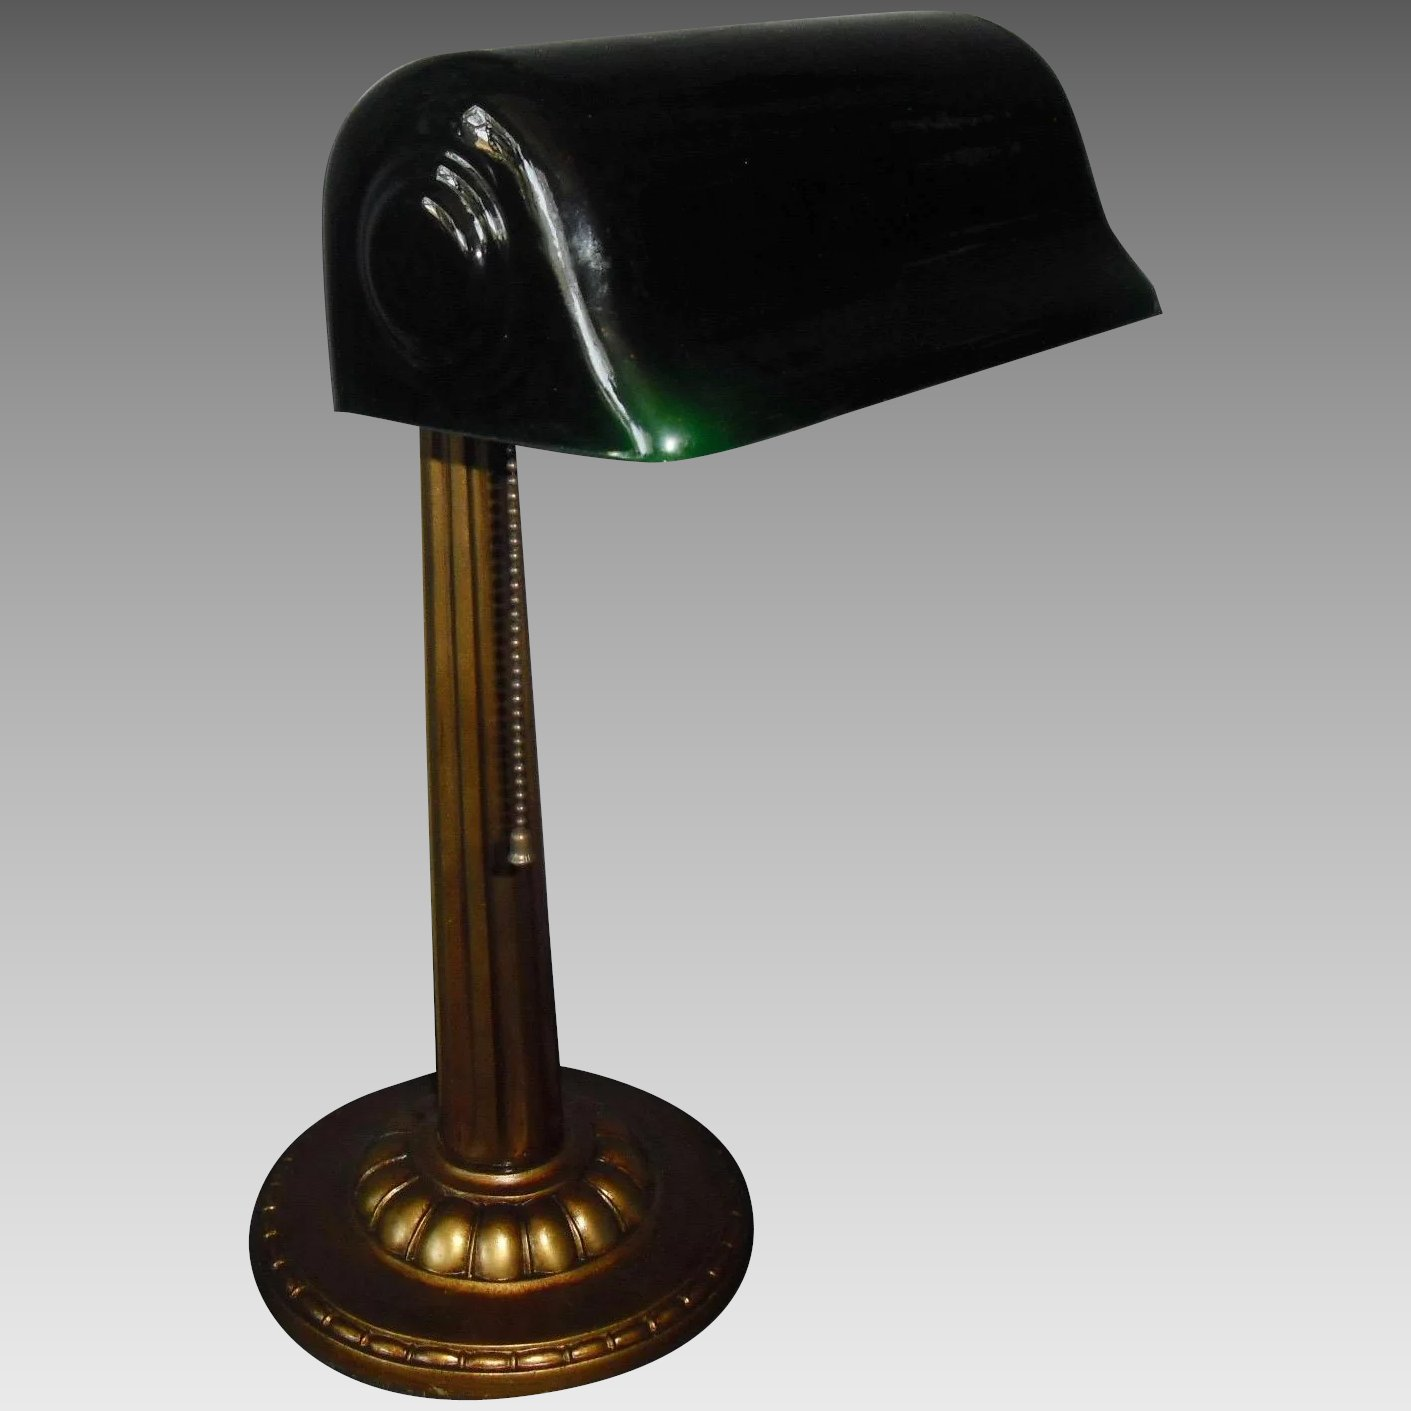 q desks green b diy at desk pin departments and black lamps lamp adjustable